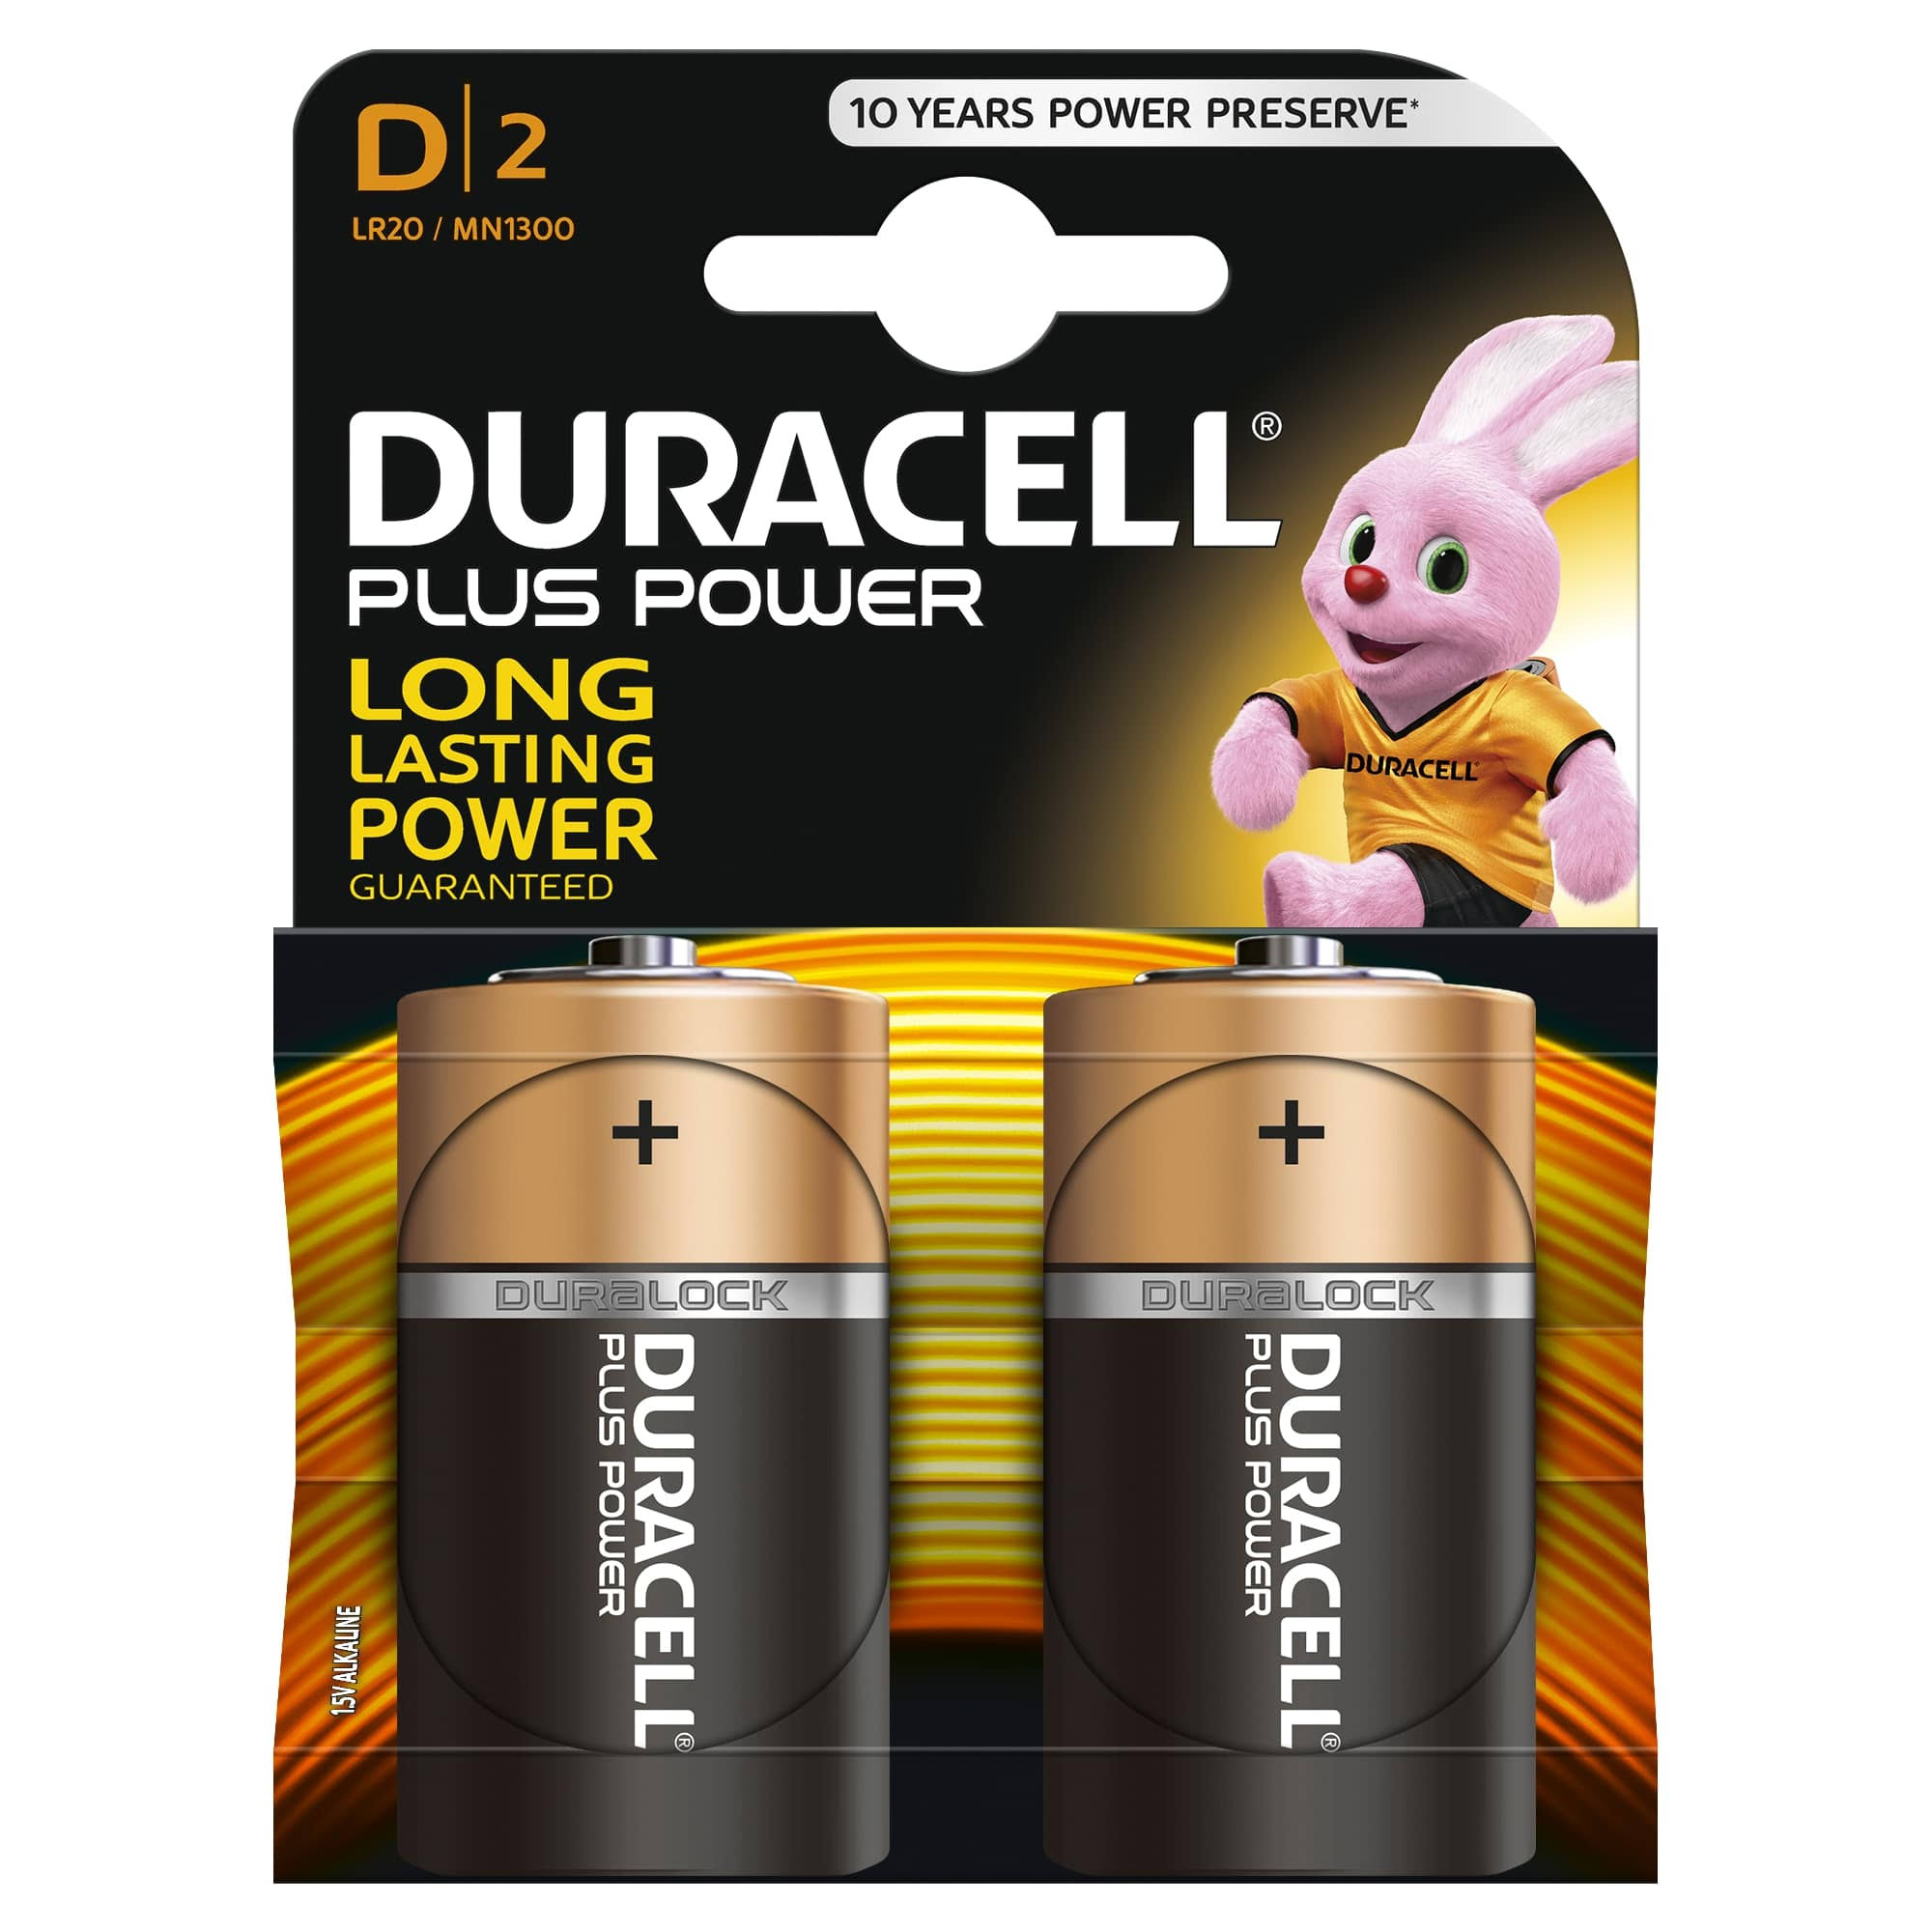 Duracell Plus Power Alkaline Batteries - Size D, 2 Pack